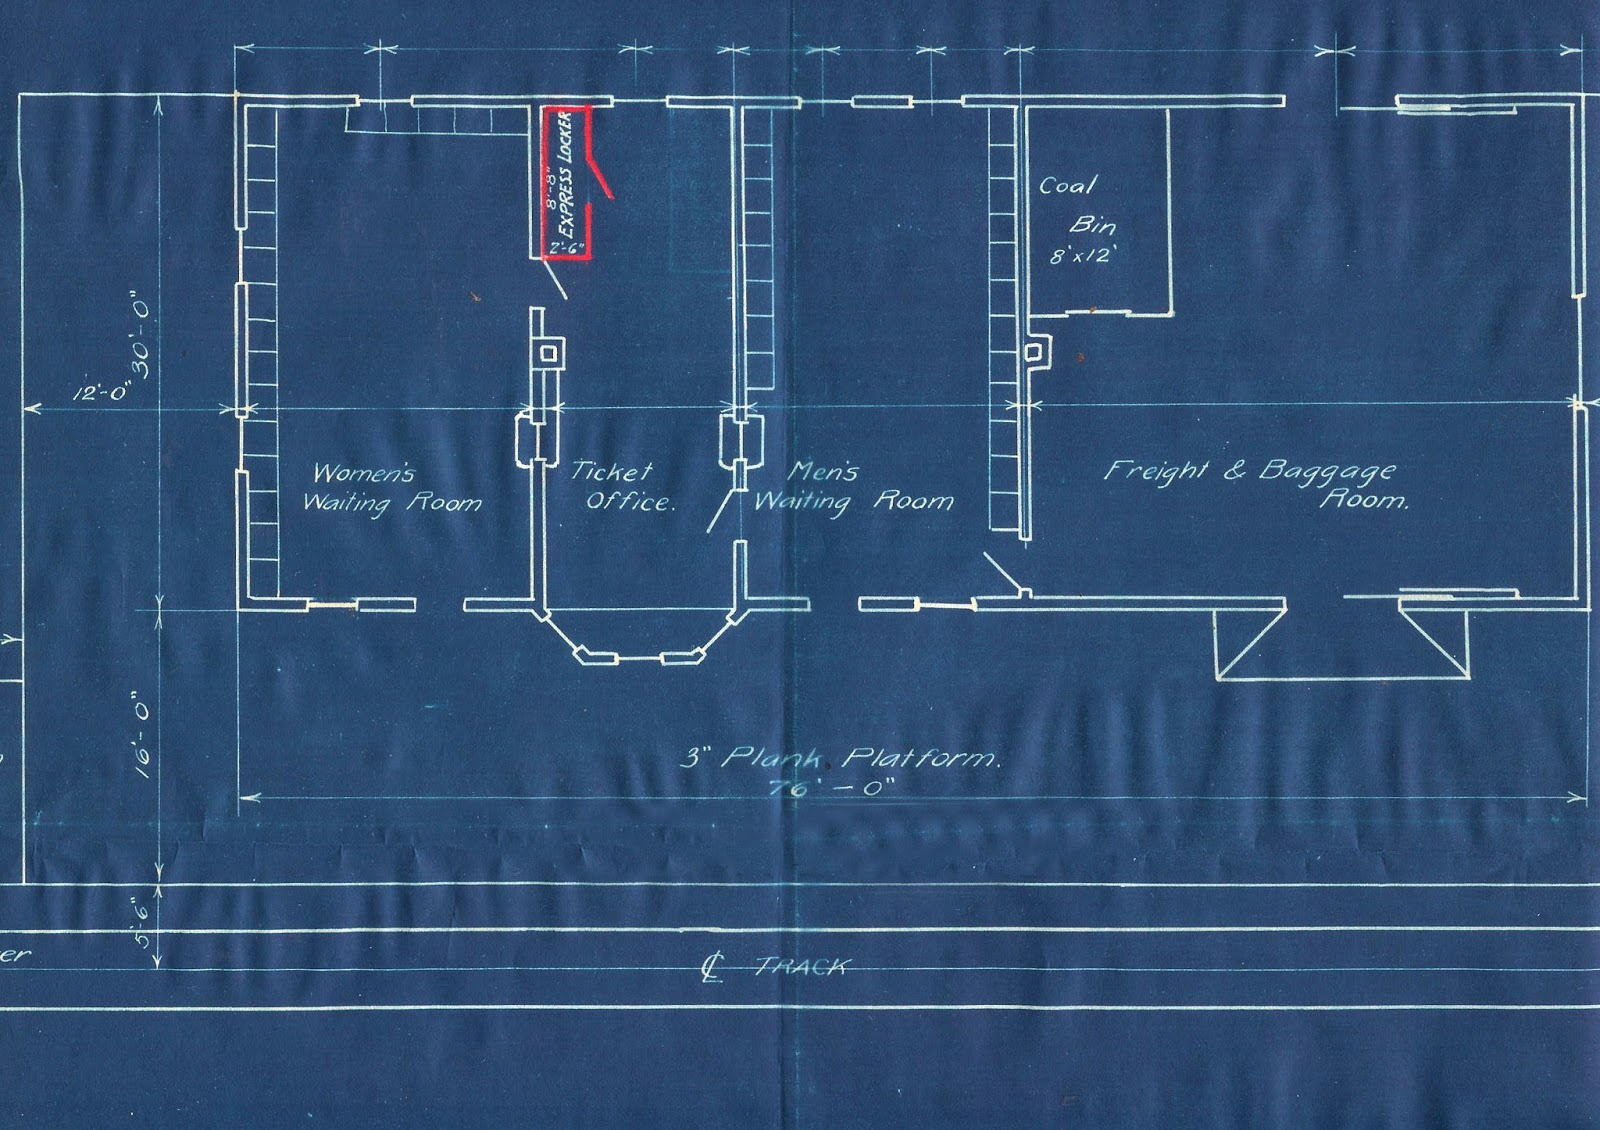 Great northern rwys mansfield branch line 1909 1985 and the mansfield depot blueprints malvernweather Image collections